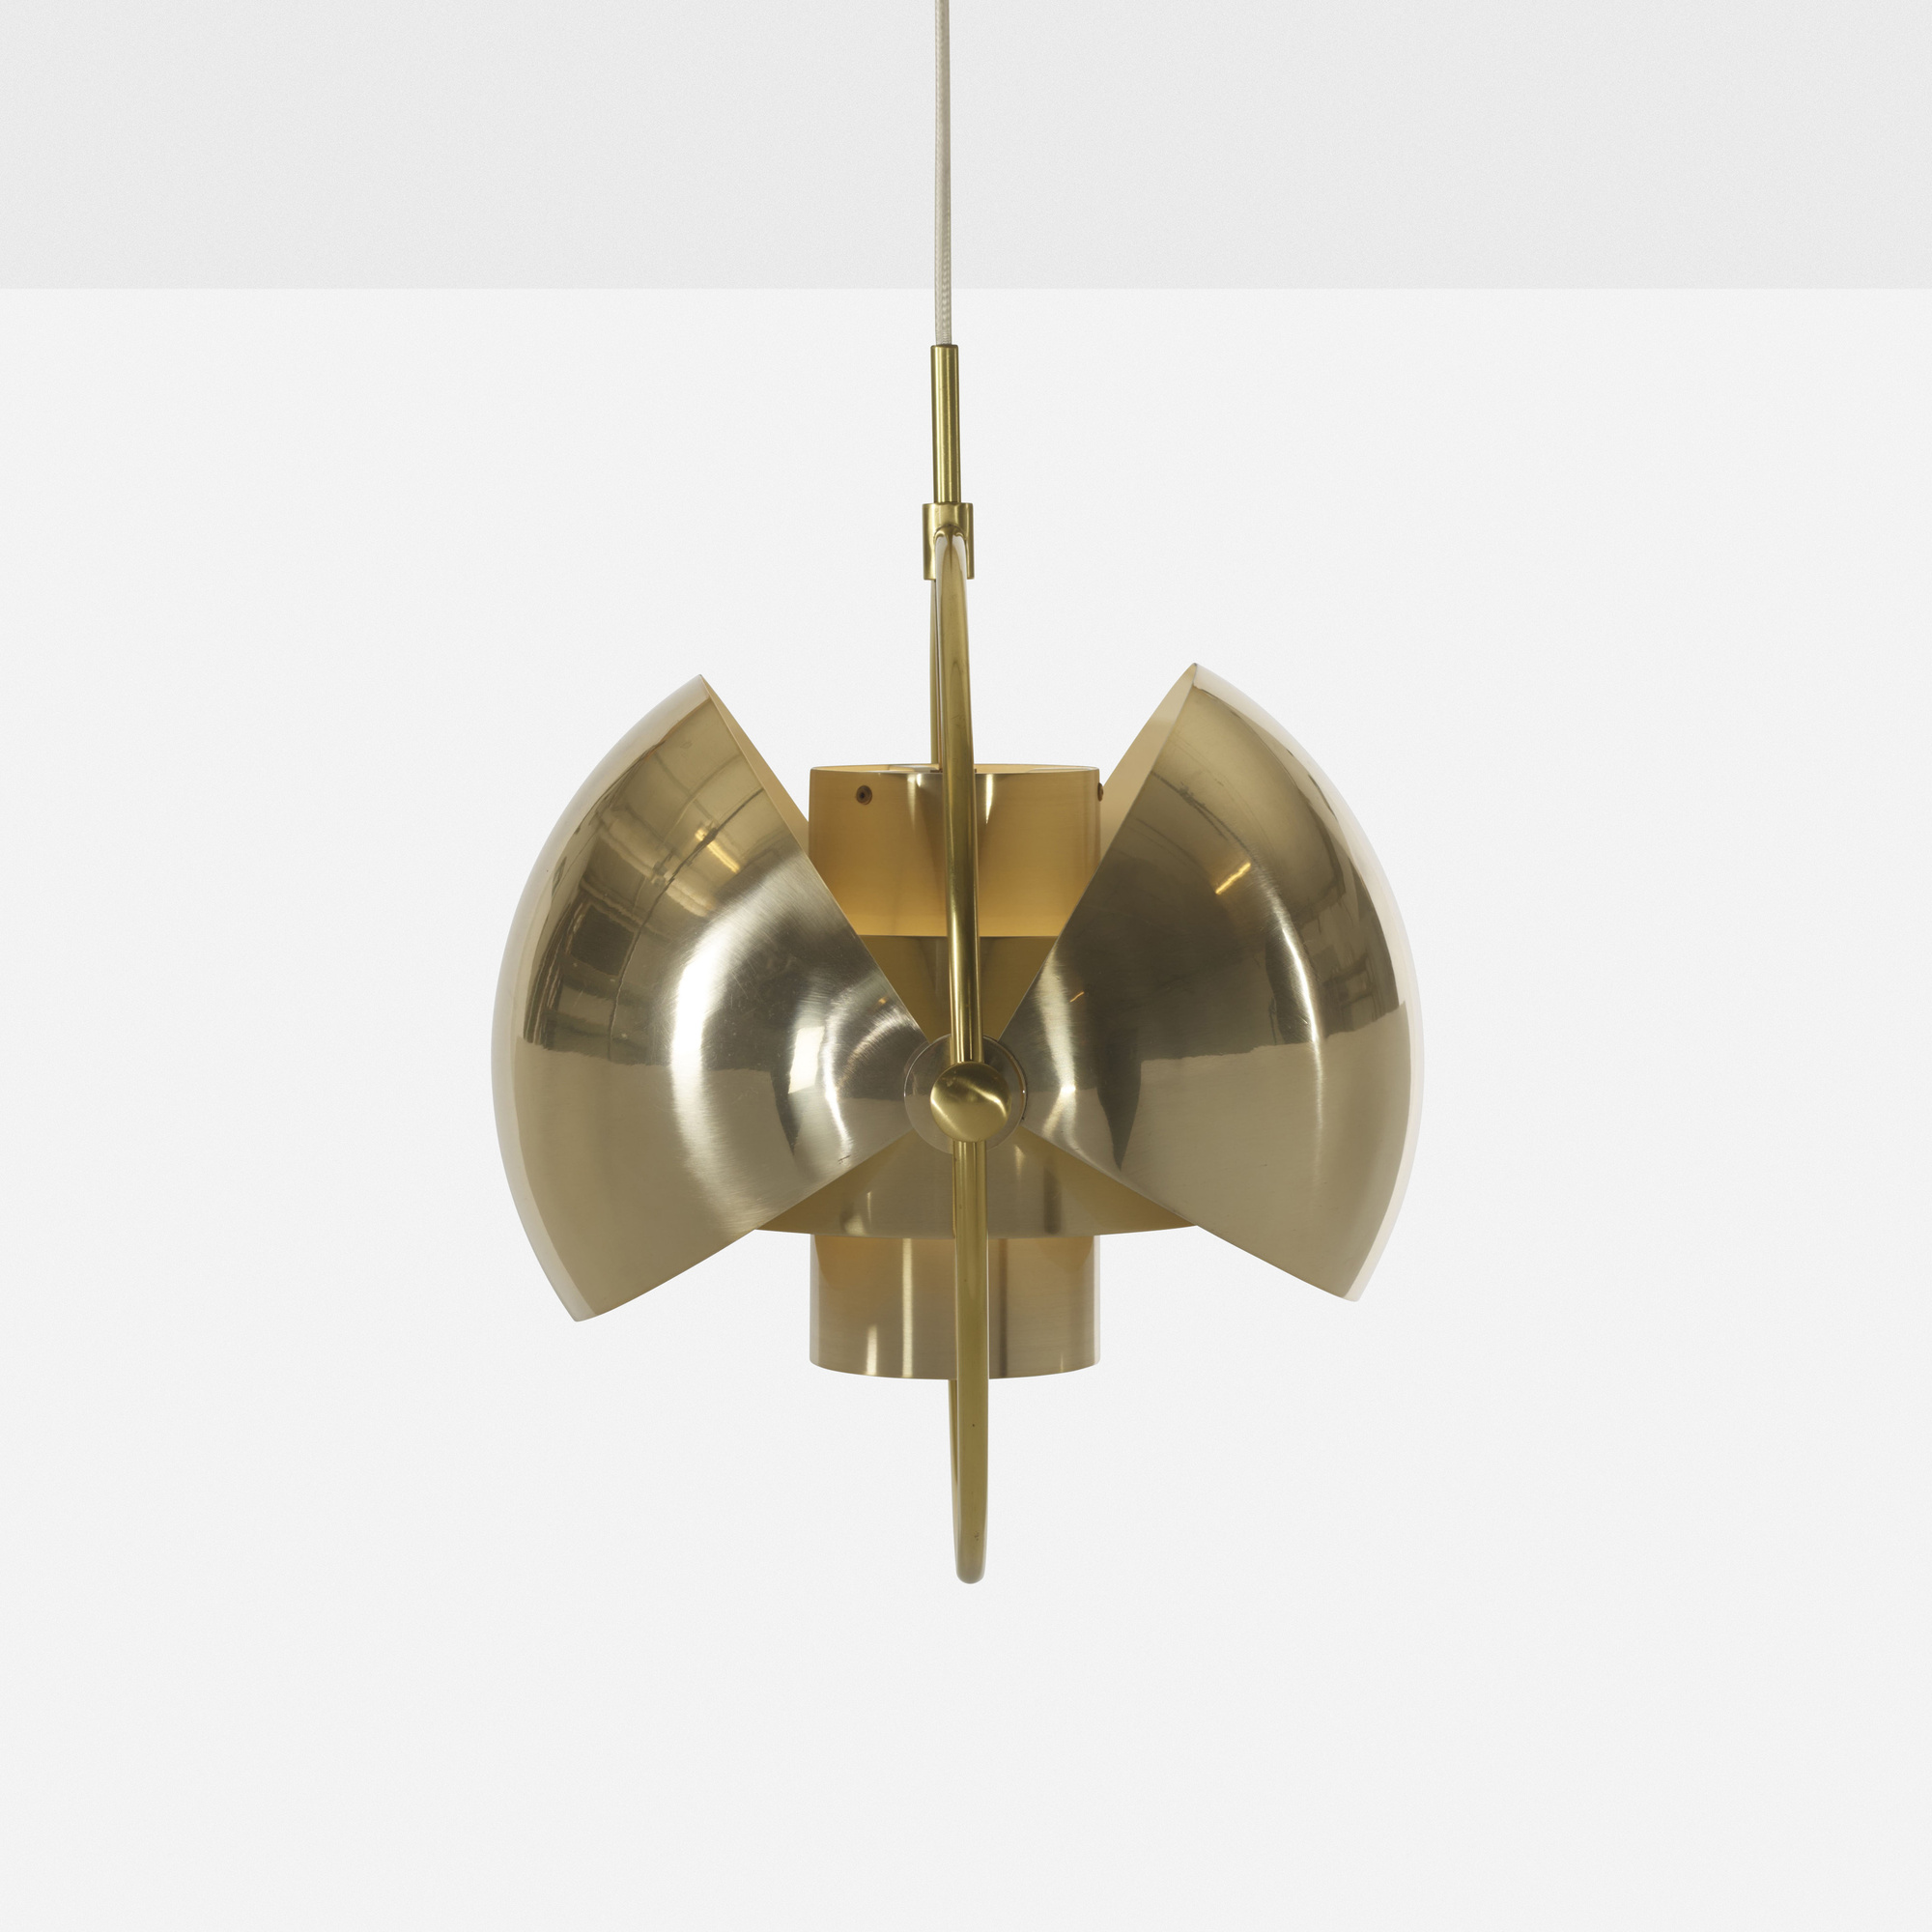 225: Louis Weisdorf / Multi-Lite pendant lamp (4 of 5)